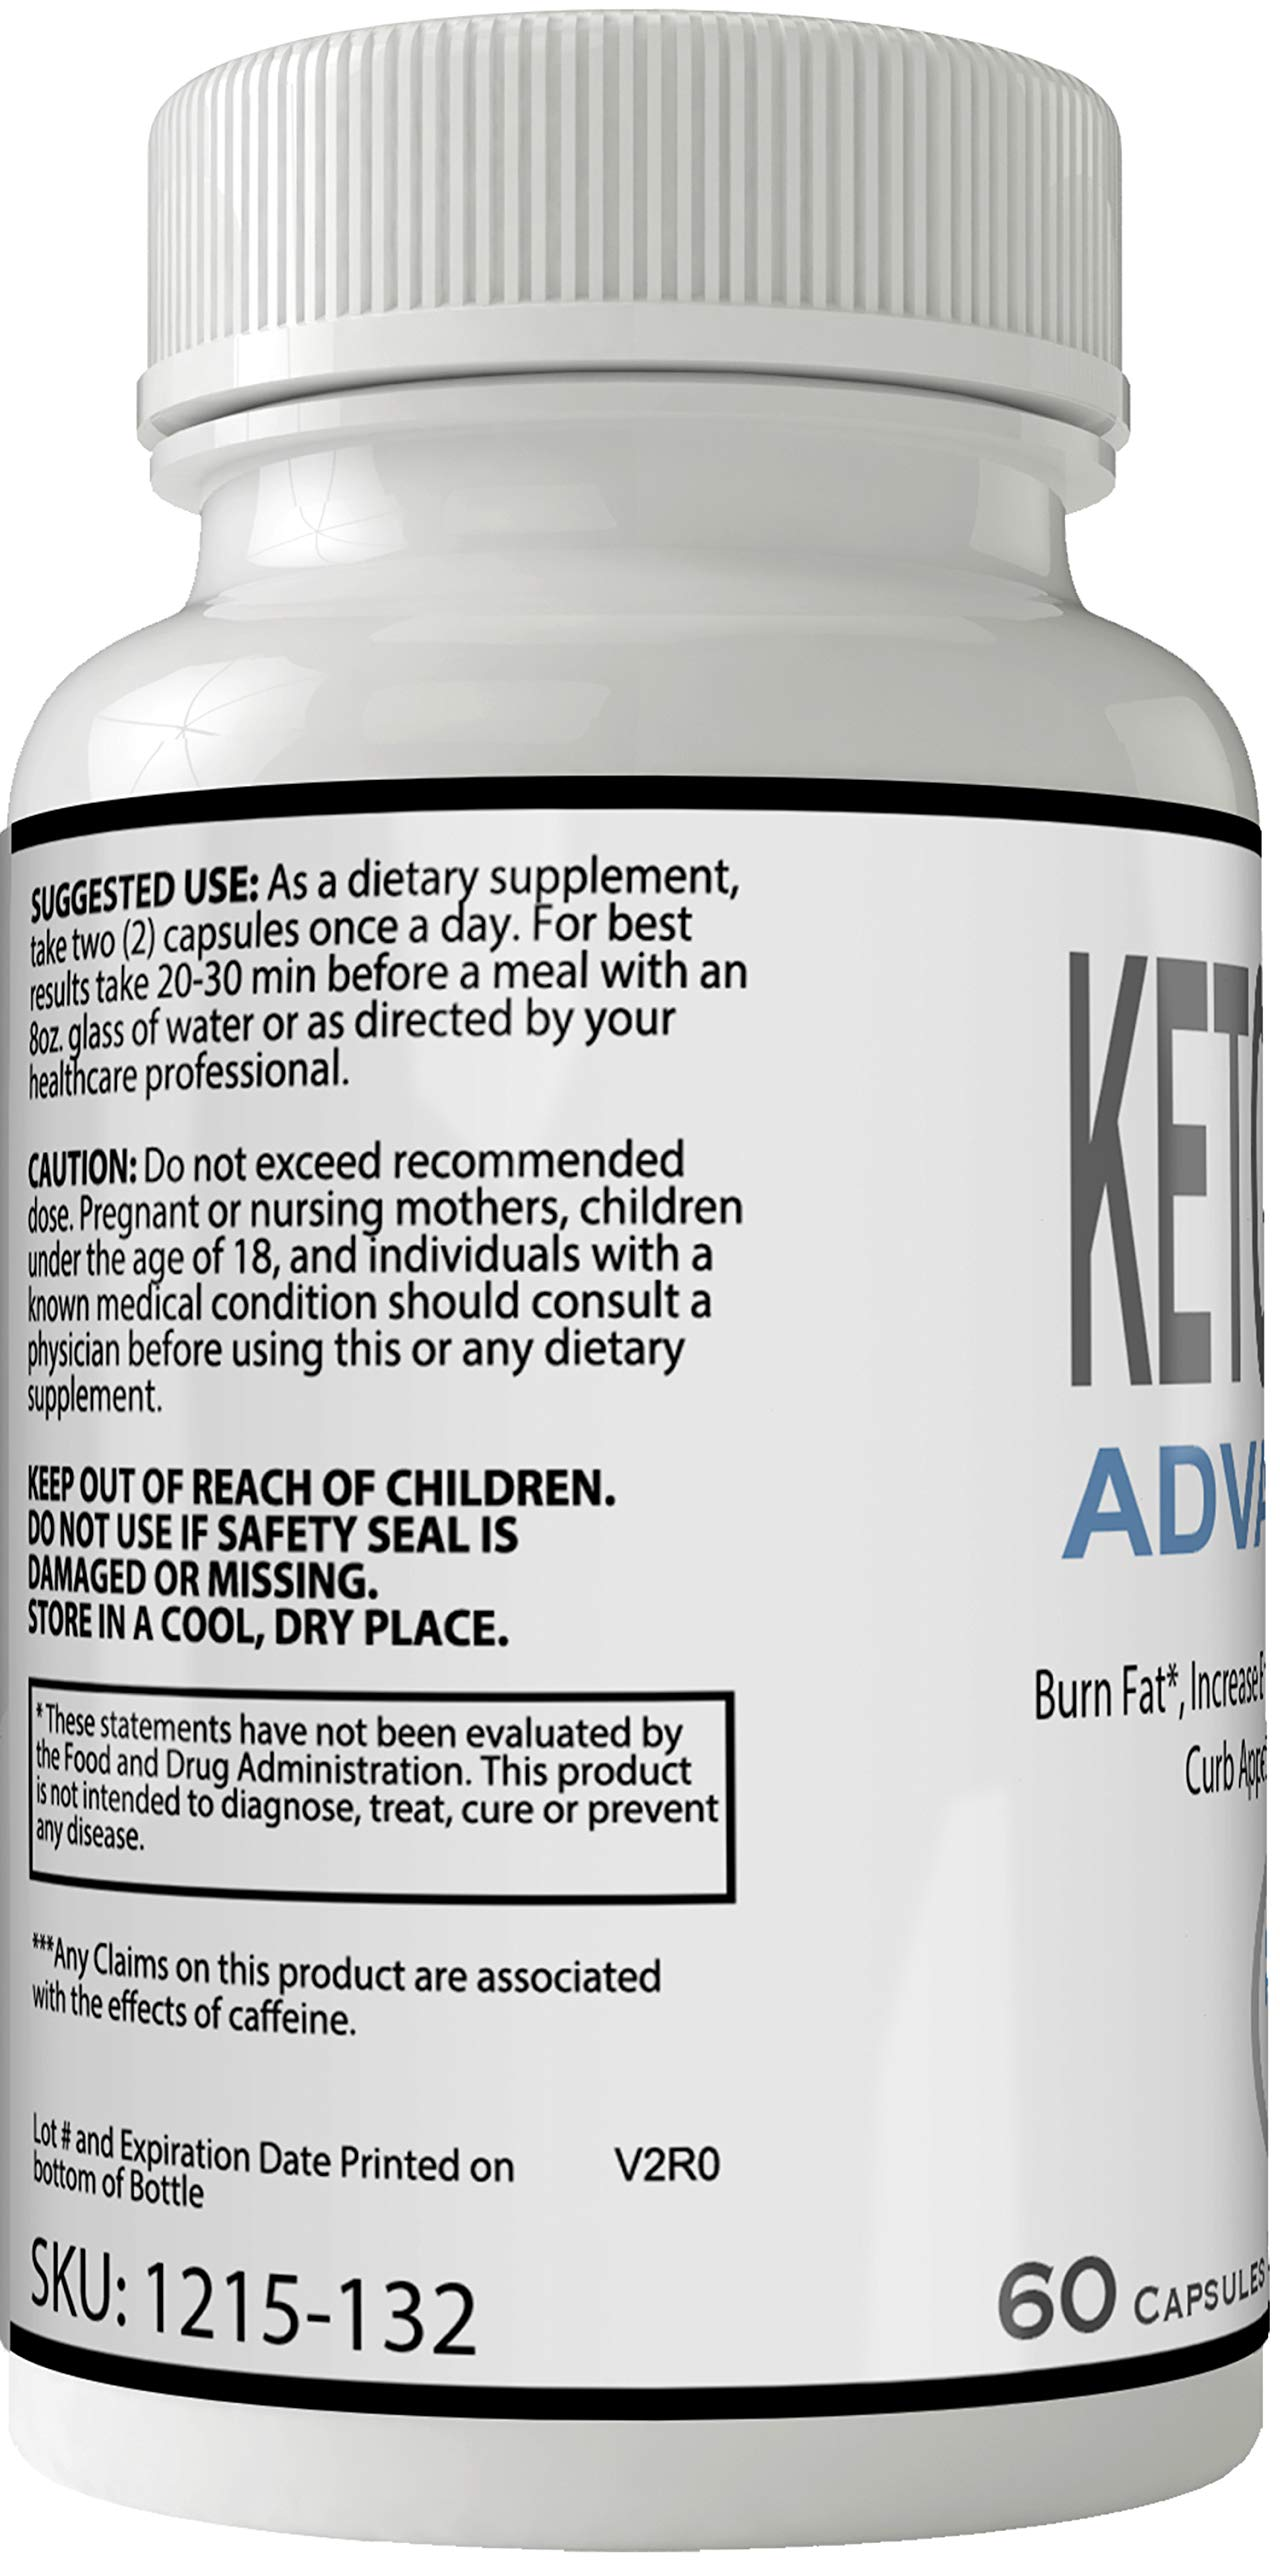 Keto Hack Advanced Capsules Weight Loss Pills Supplement, Appetite Suppressant with Ultra Advance Natural Ketogenic 800 mg Fast Formula with BHB Salts Ketone Diet Boost Metabolism by nutra4health LLC (Image #3)